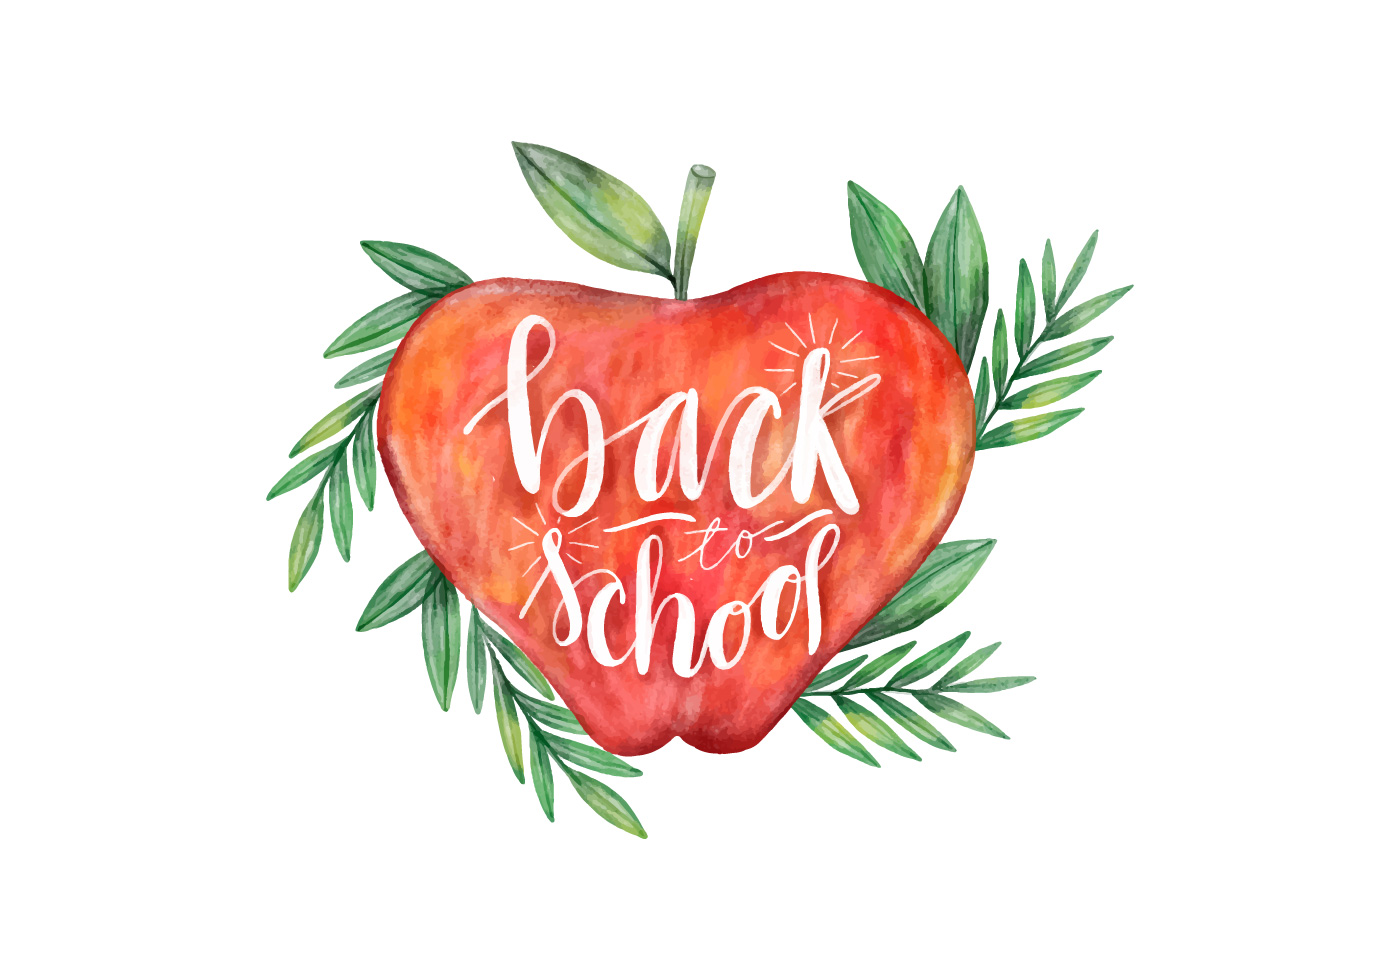 Apple back to school. Watercolor with leaves vector